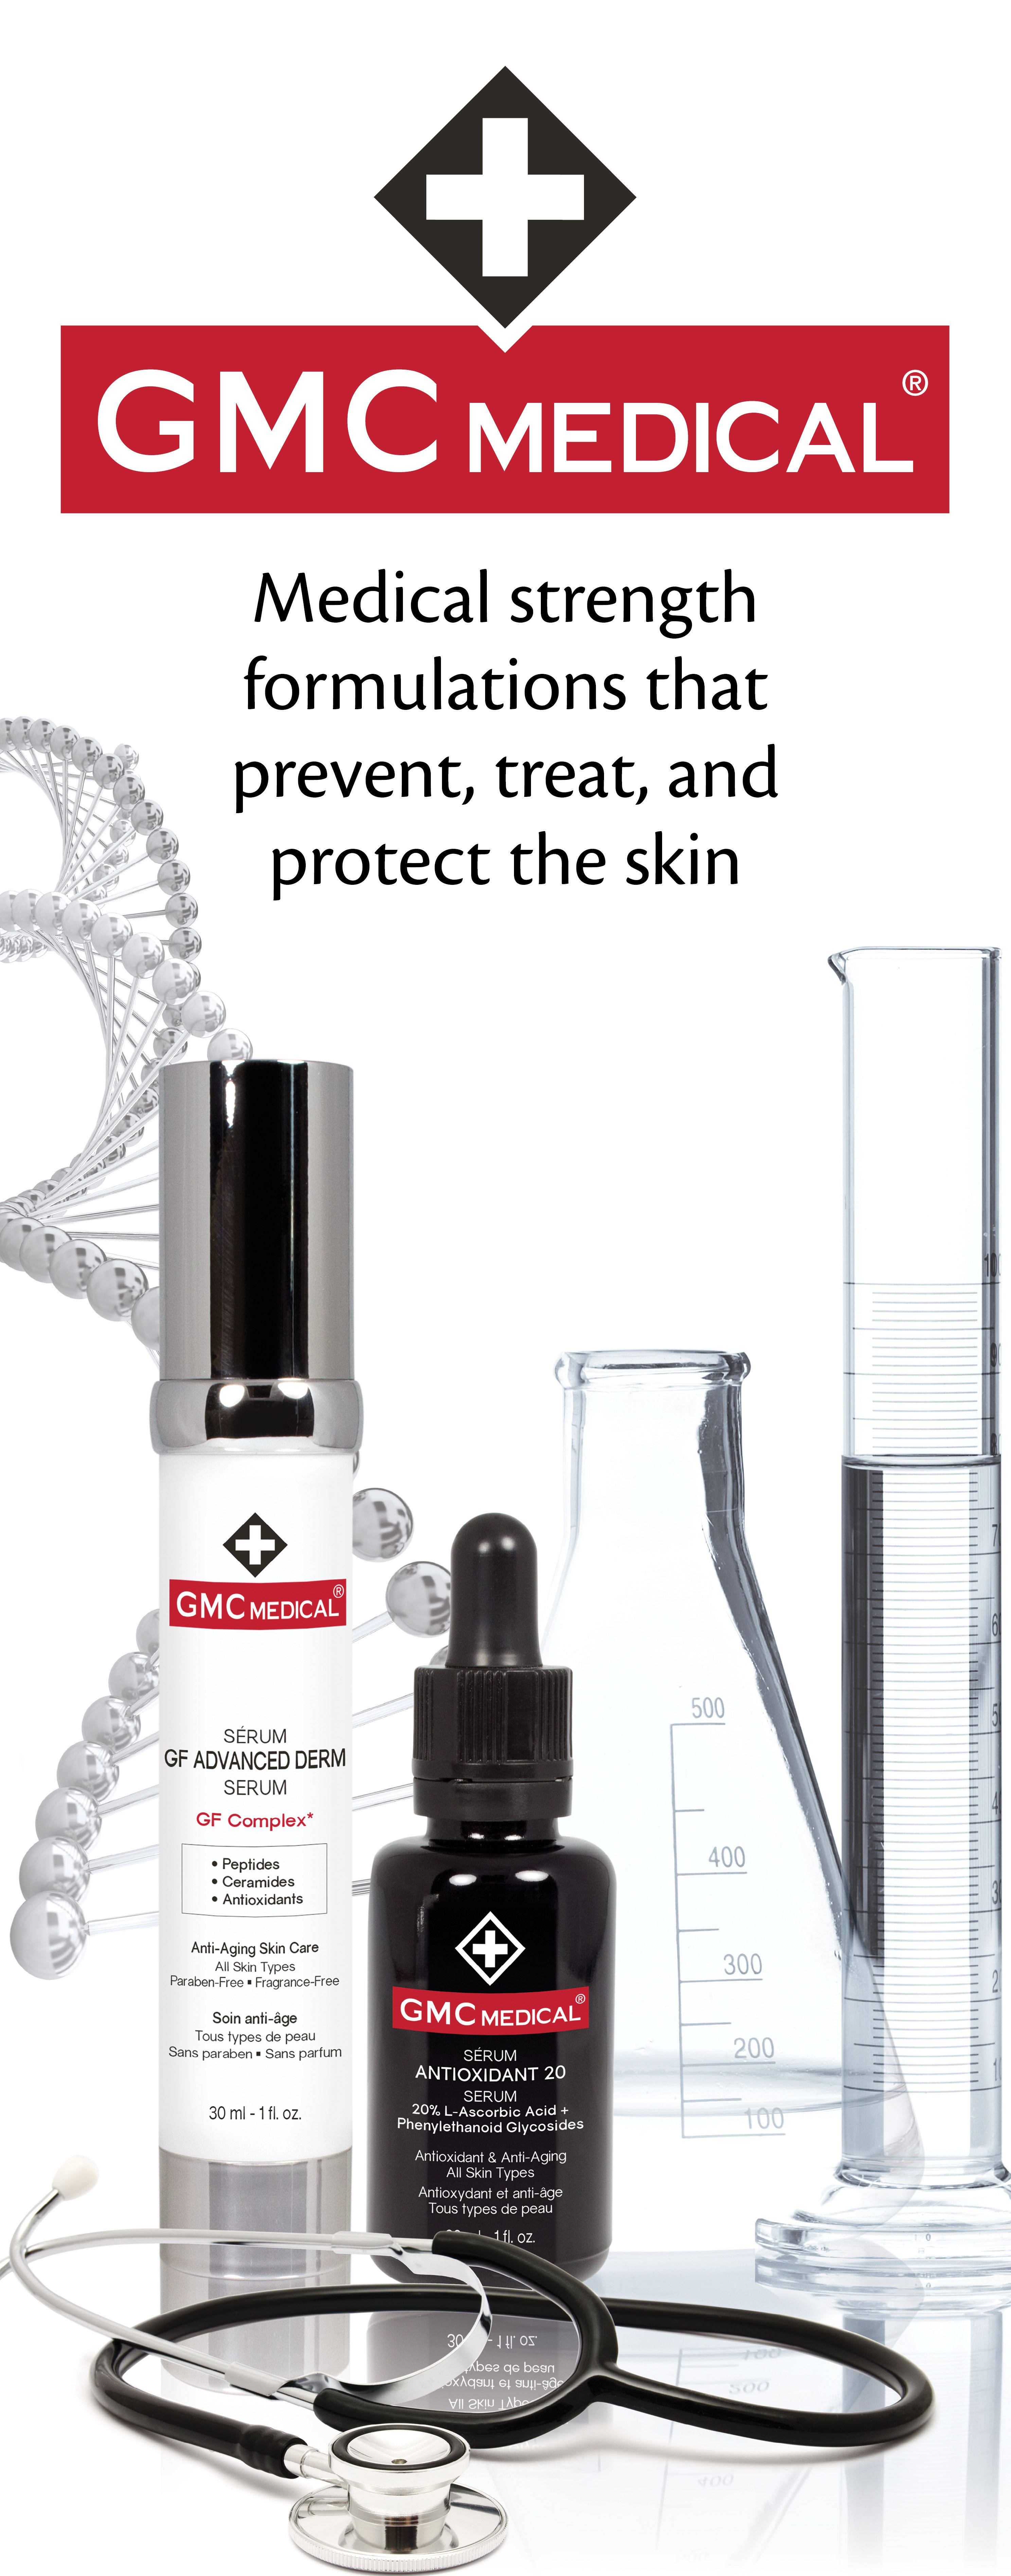 Gmc Medical With Images Skin Protection Beauty Secrets Derm